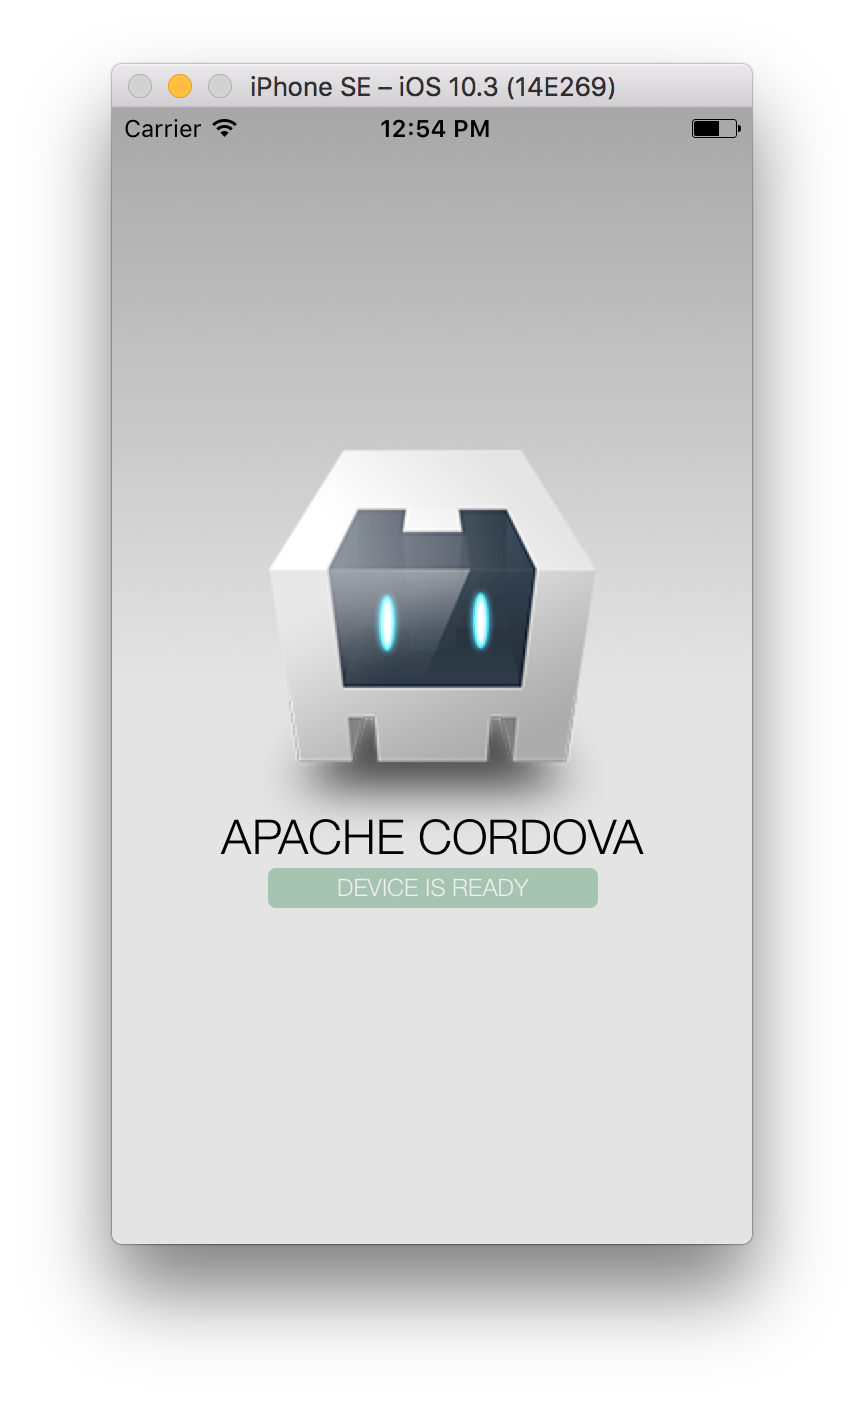 iPhone simulator running Cordova app